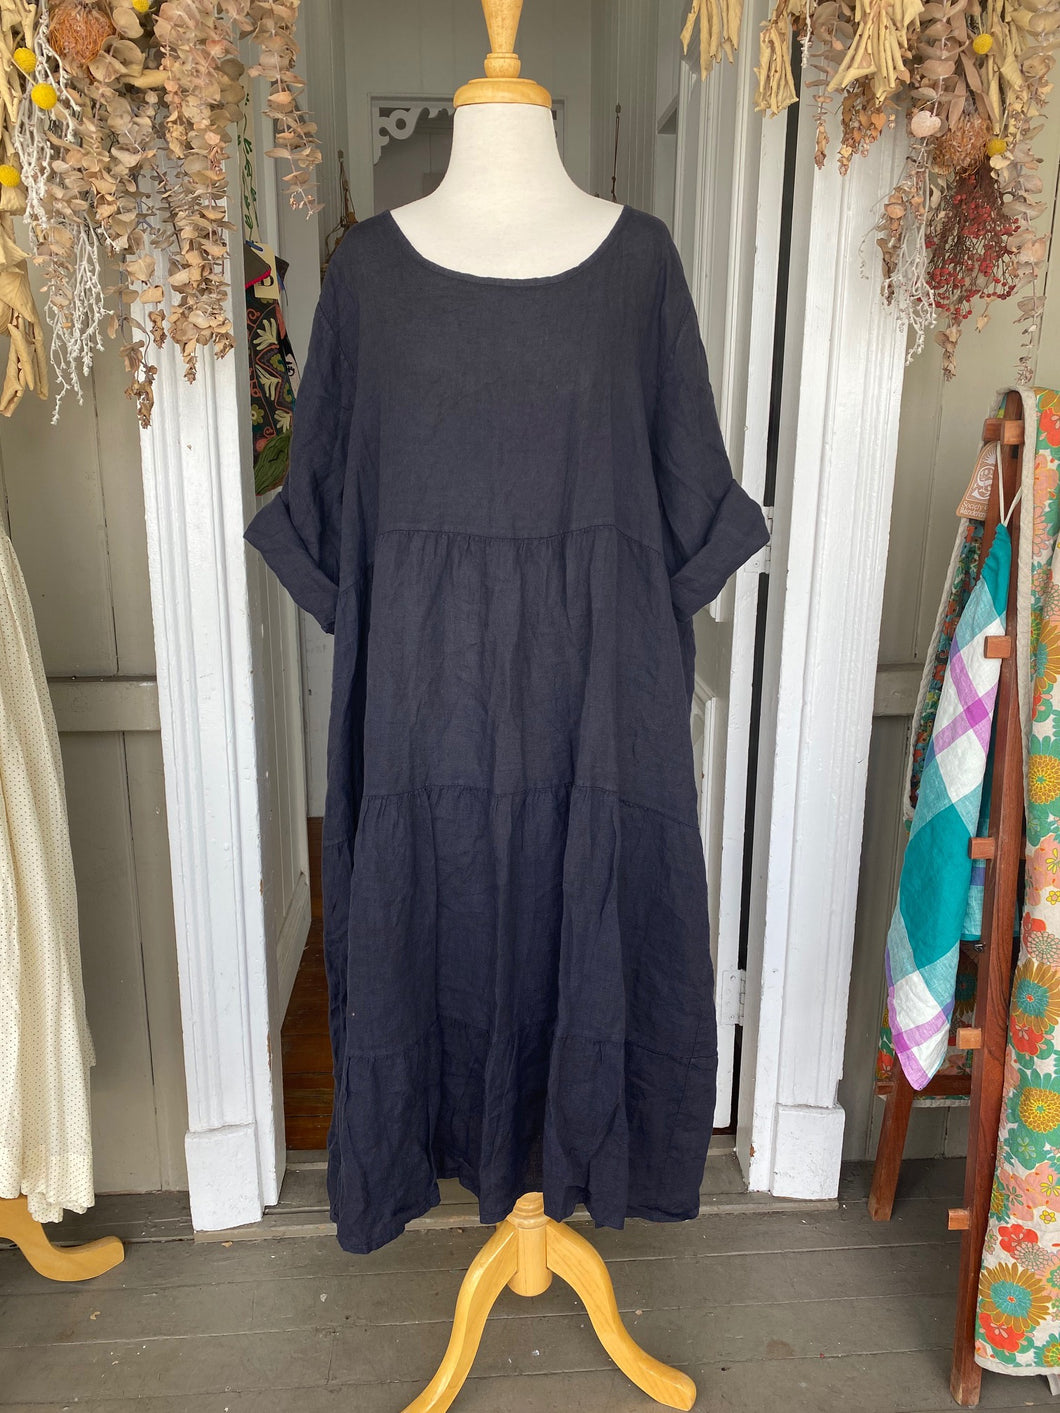 Stella Linen Dress - Navy-Clothing-DiModa-Bristle by Melissa Simmonds